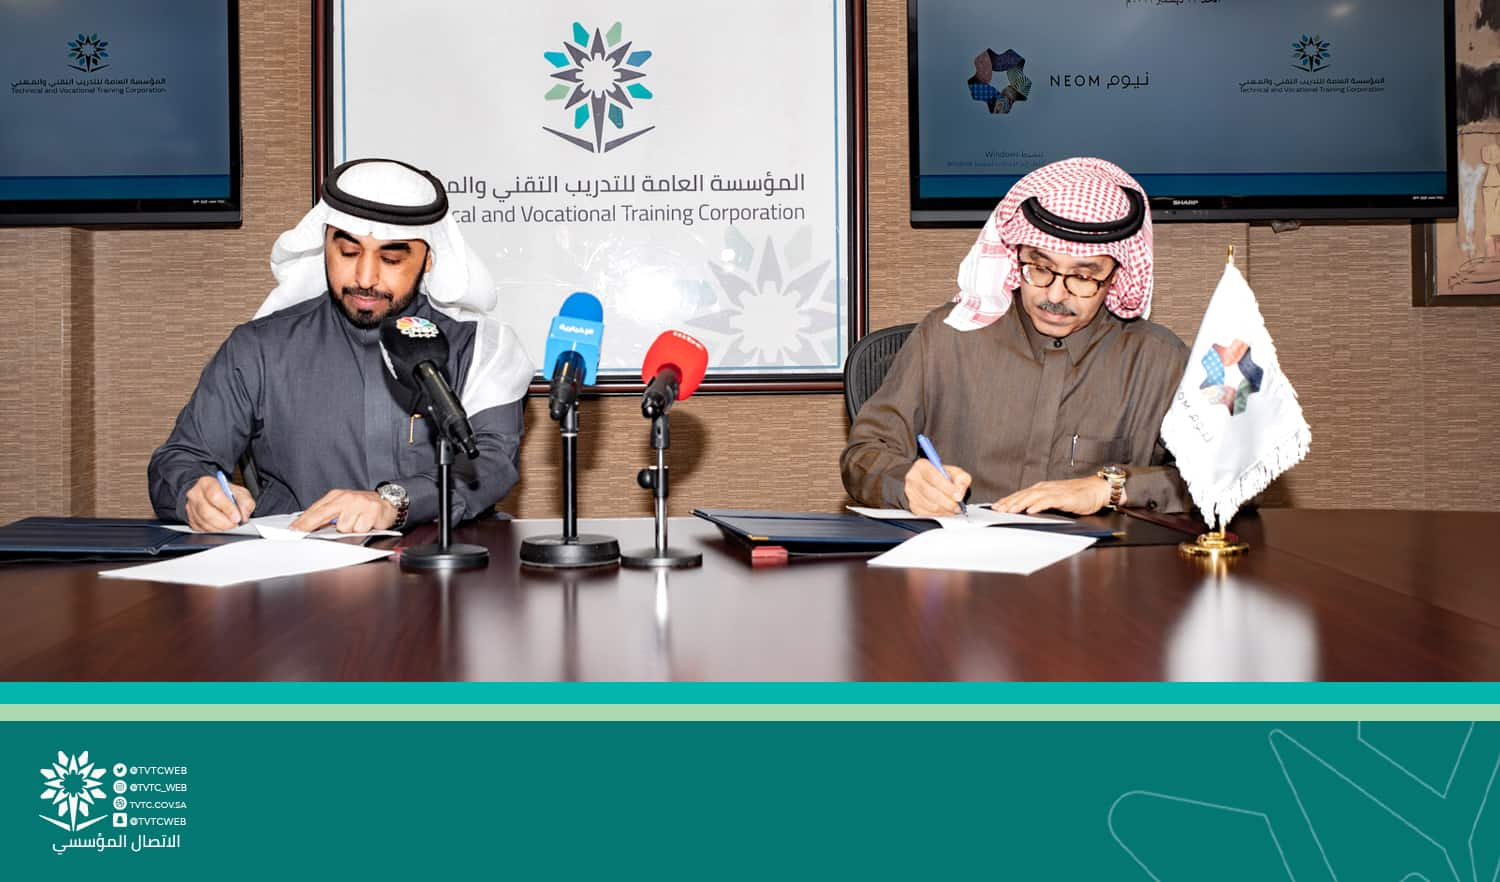 A memorandum of understanding to provide 6000 job opportunities and training